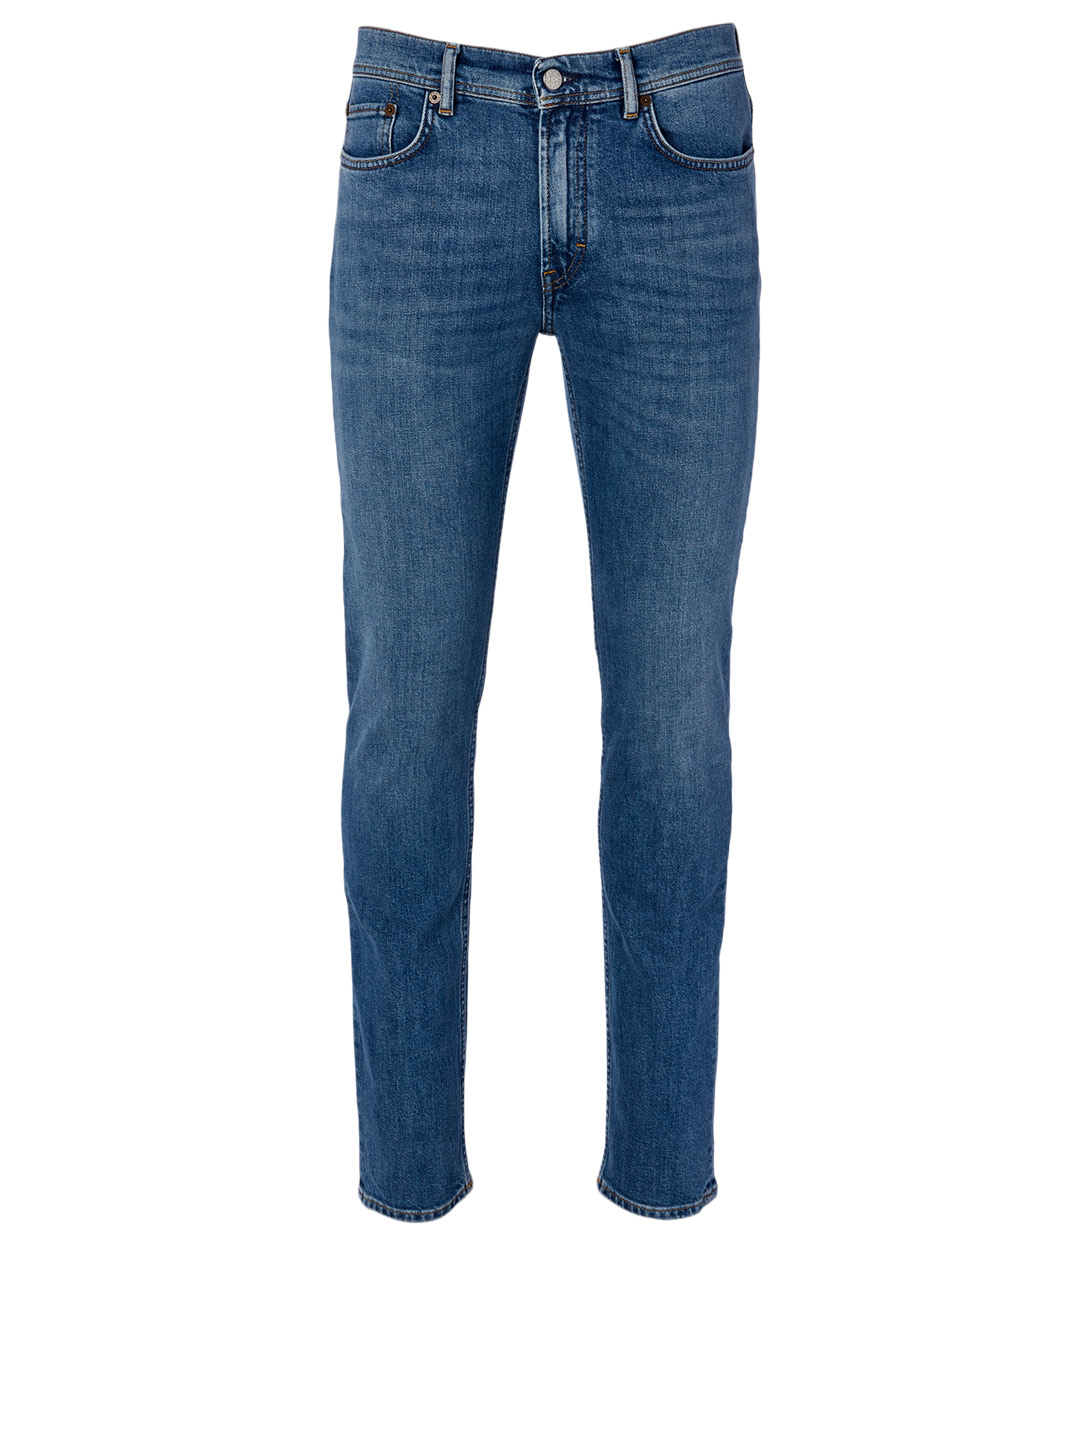 ACNE STUDIOS Cotton Stretch Skinny Jeans Men's Blue